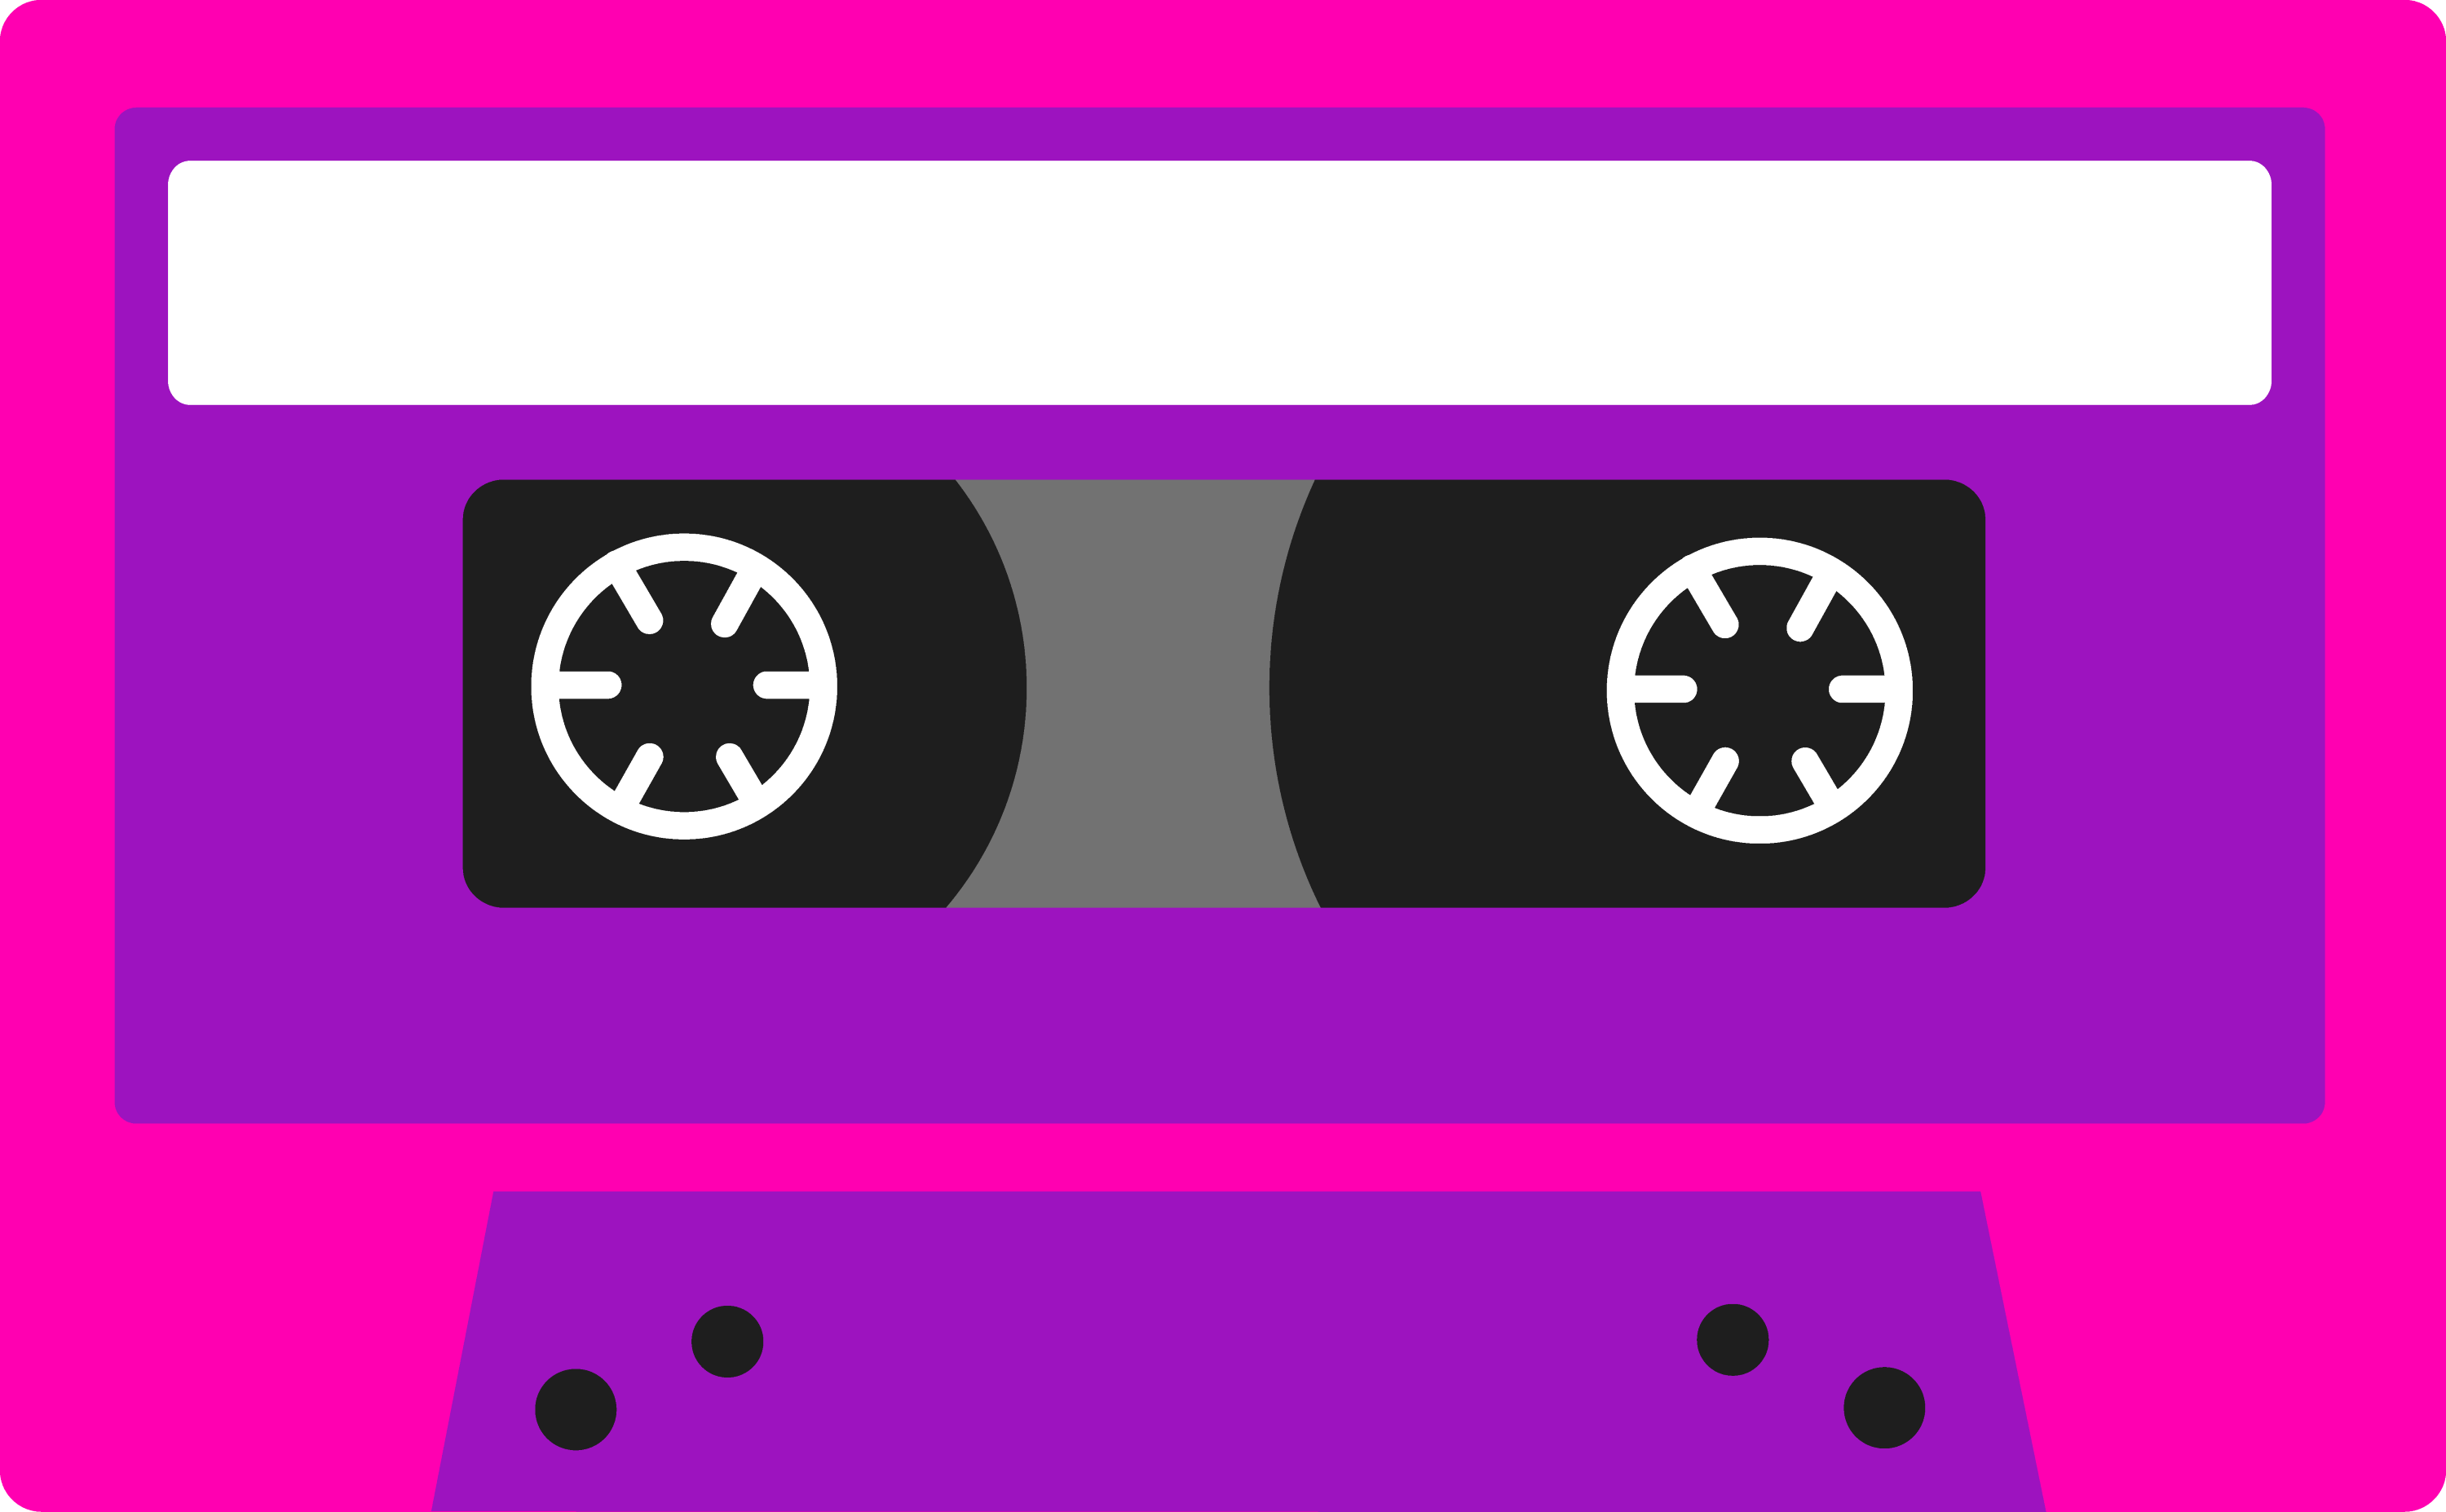 Boombox Pop Art Pink and Purple Casset...